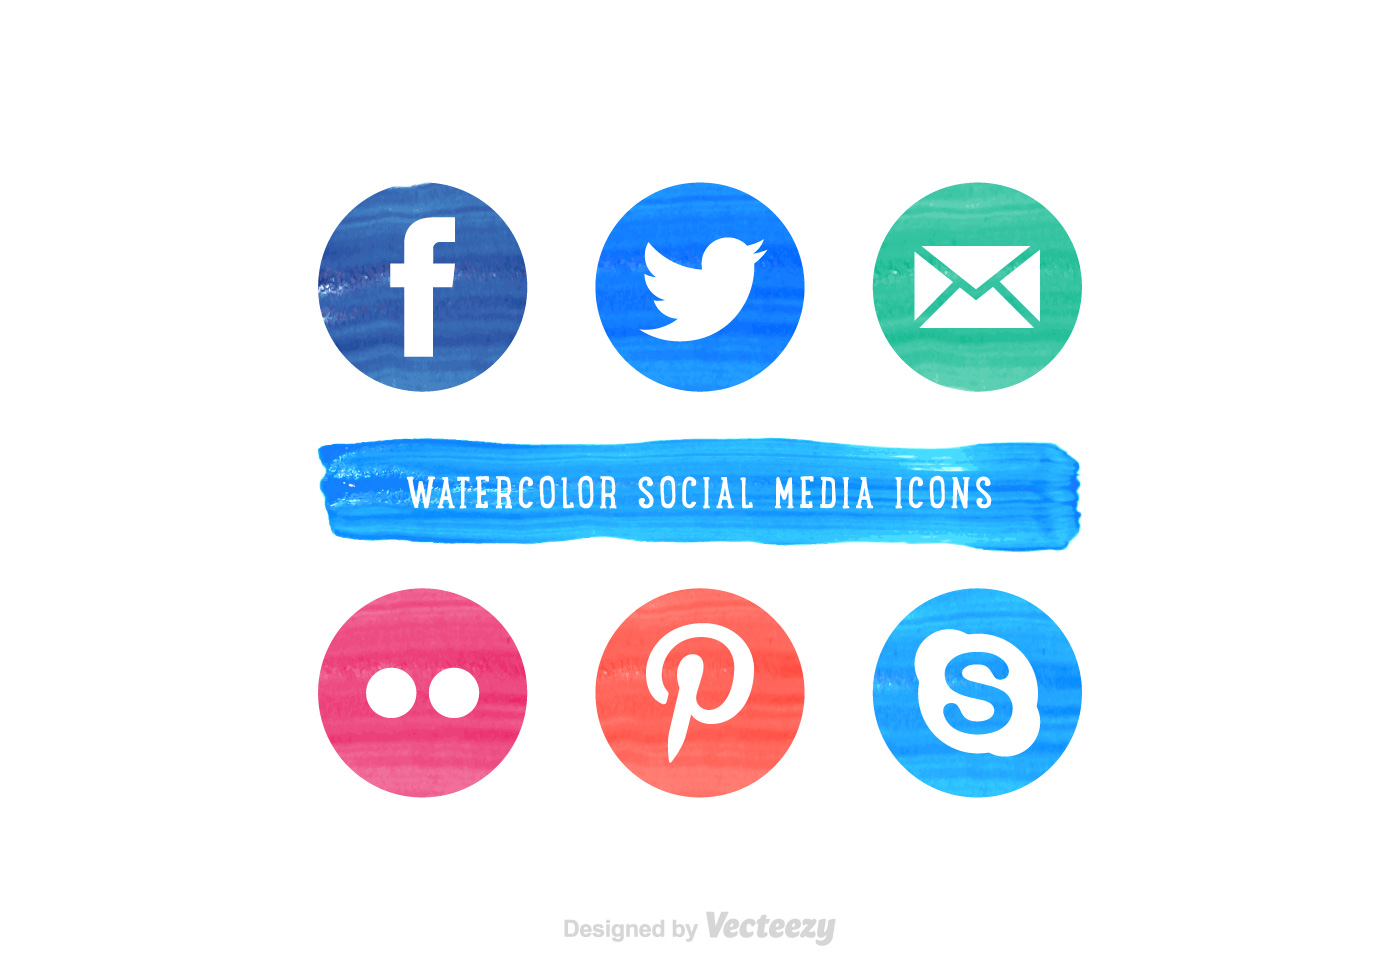 free-social-media-watercolor-vector-icons.jpg